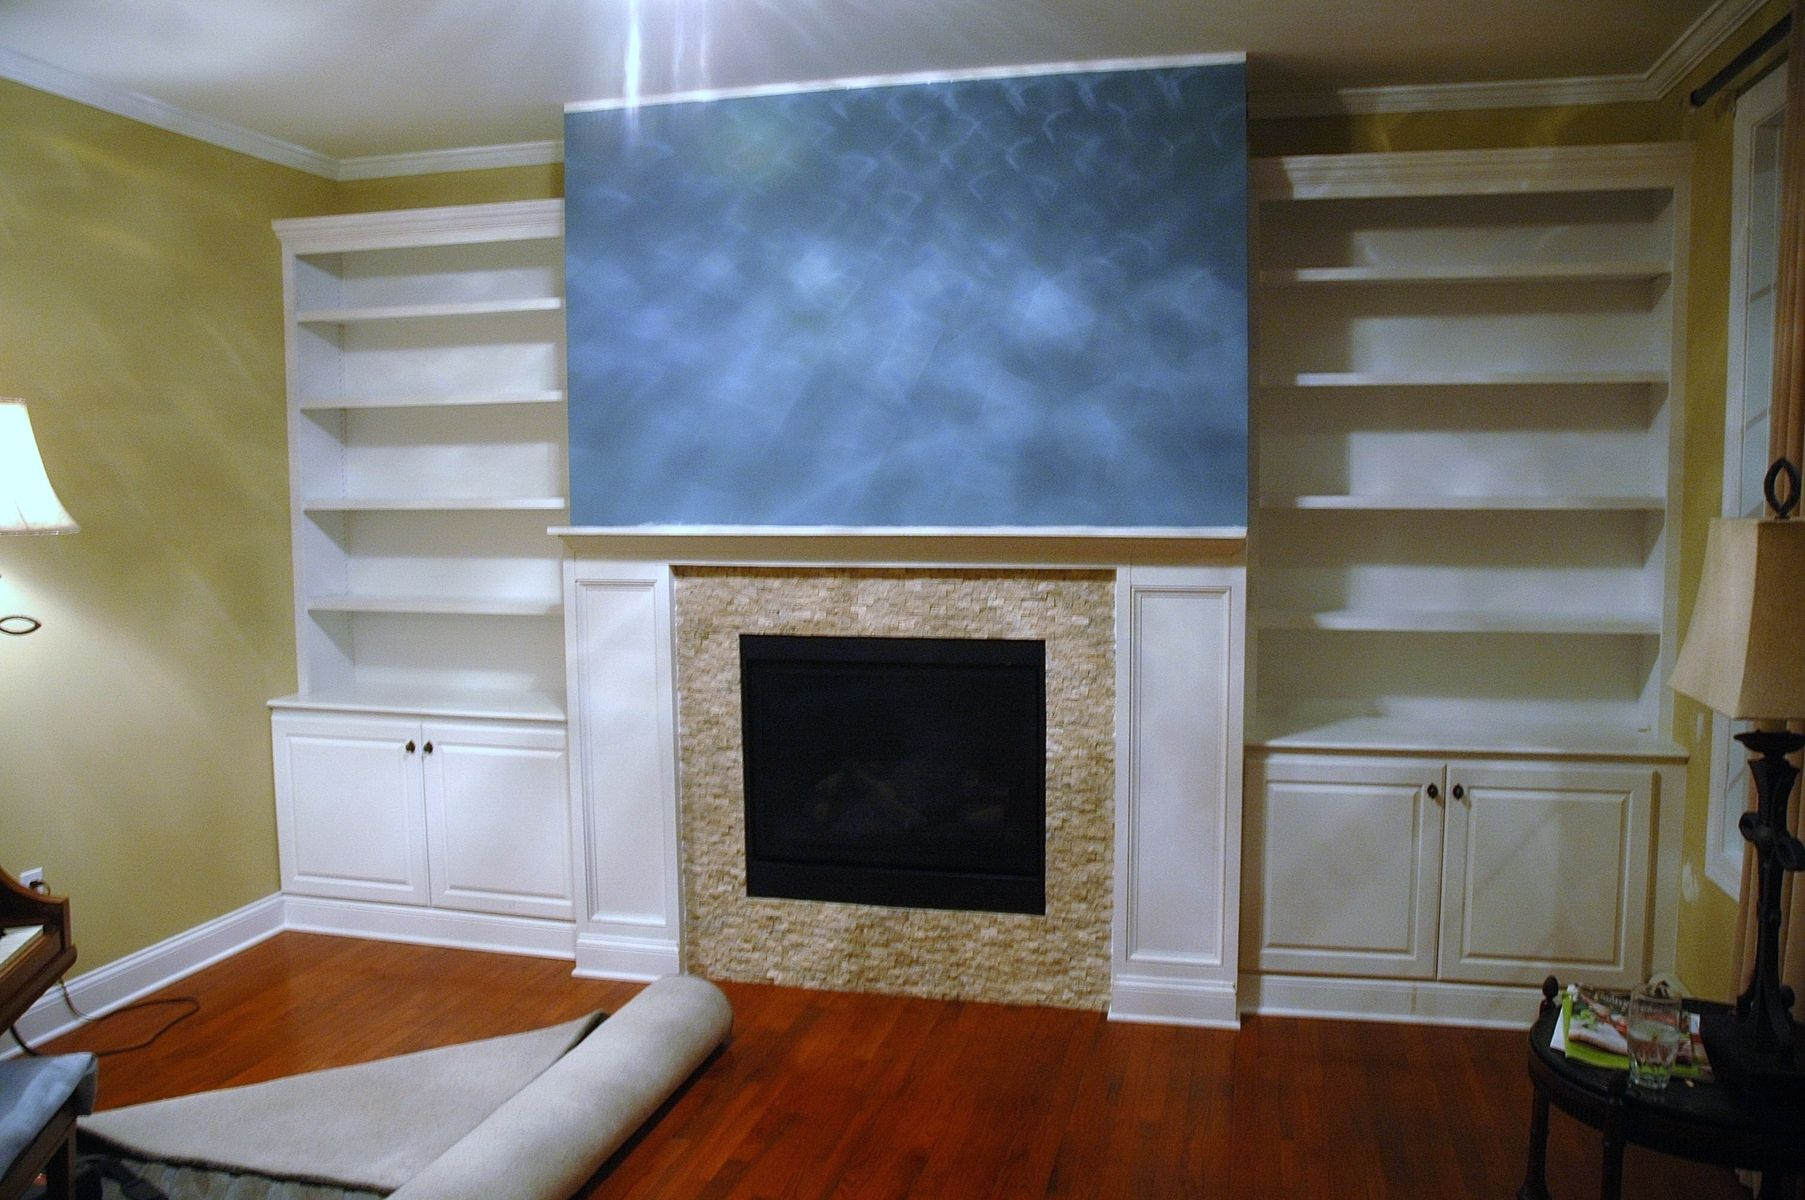 Handmade Built-In Bookcases, Base Cabinets And Fireplace